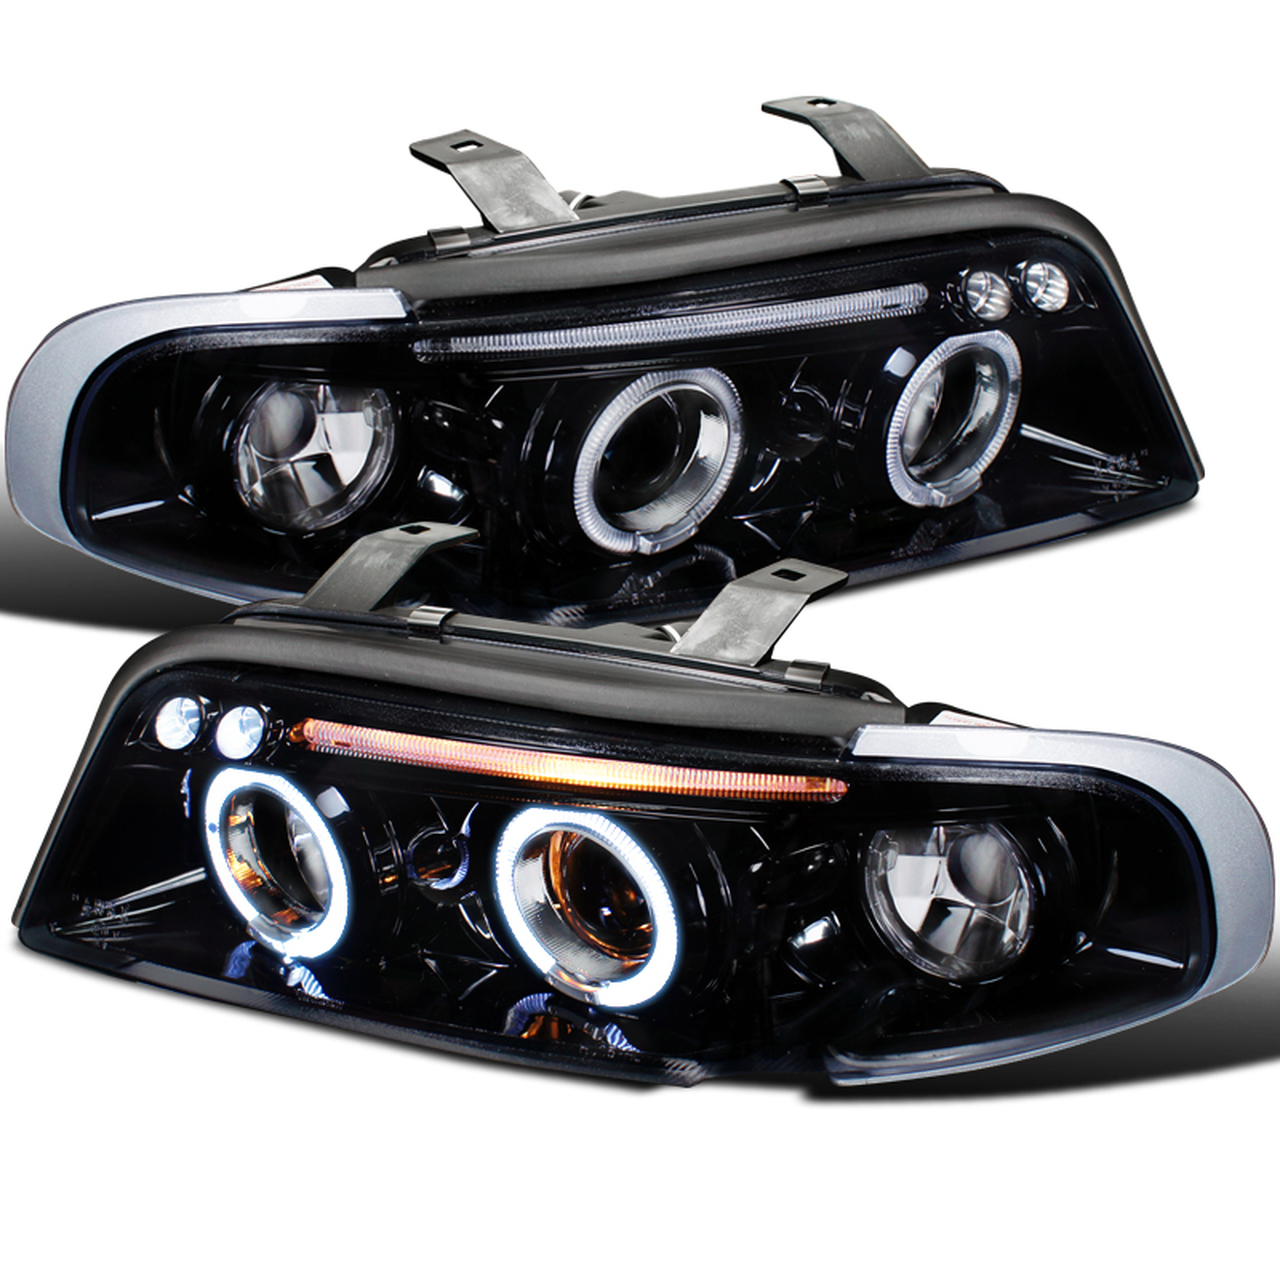 Spec-D Tuning Glossy Black with Smoke Lens Projector Headlights - Spec-D Tuning LHP-A496G-TM